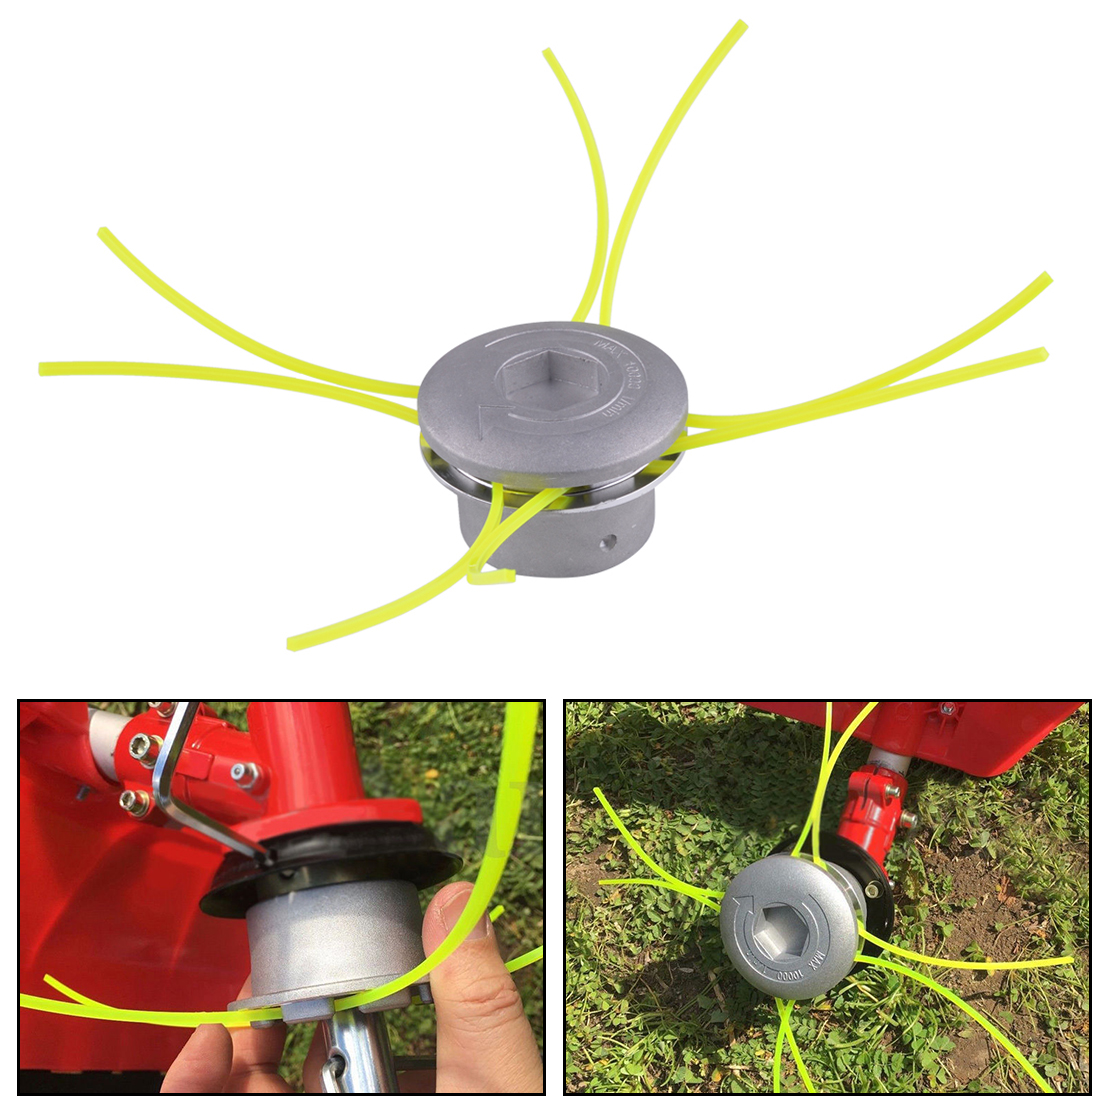 LETAOSK New Aluminum Linehead String Grass Trimmer Head Spool Set For Gasoline Brushcutter Cutter Weed Eater Tools Accessory